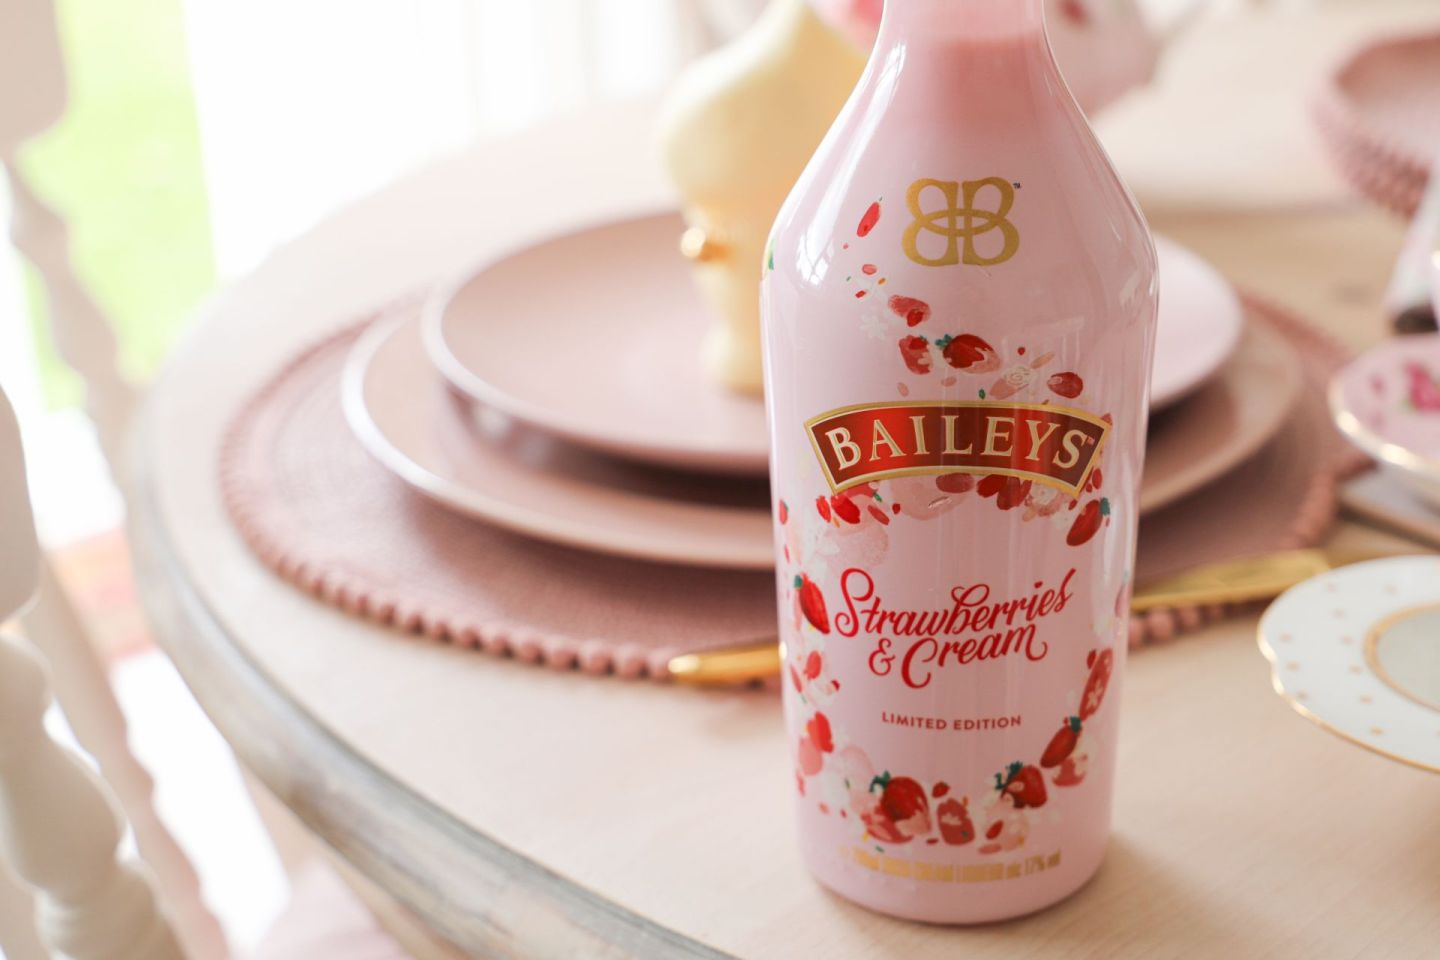 Baileys stawberries and cream